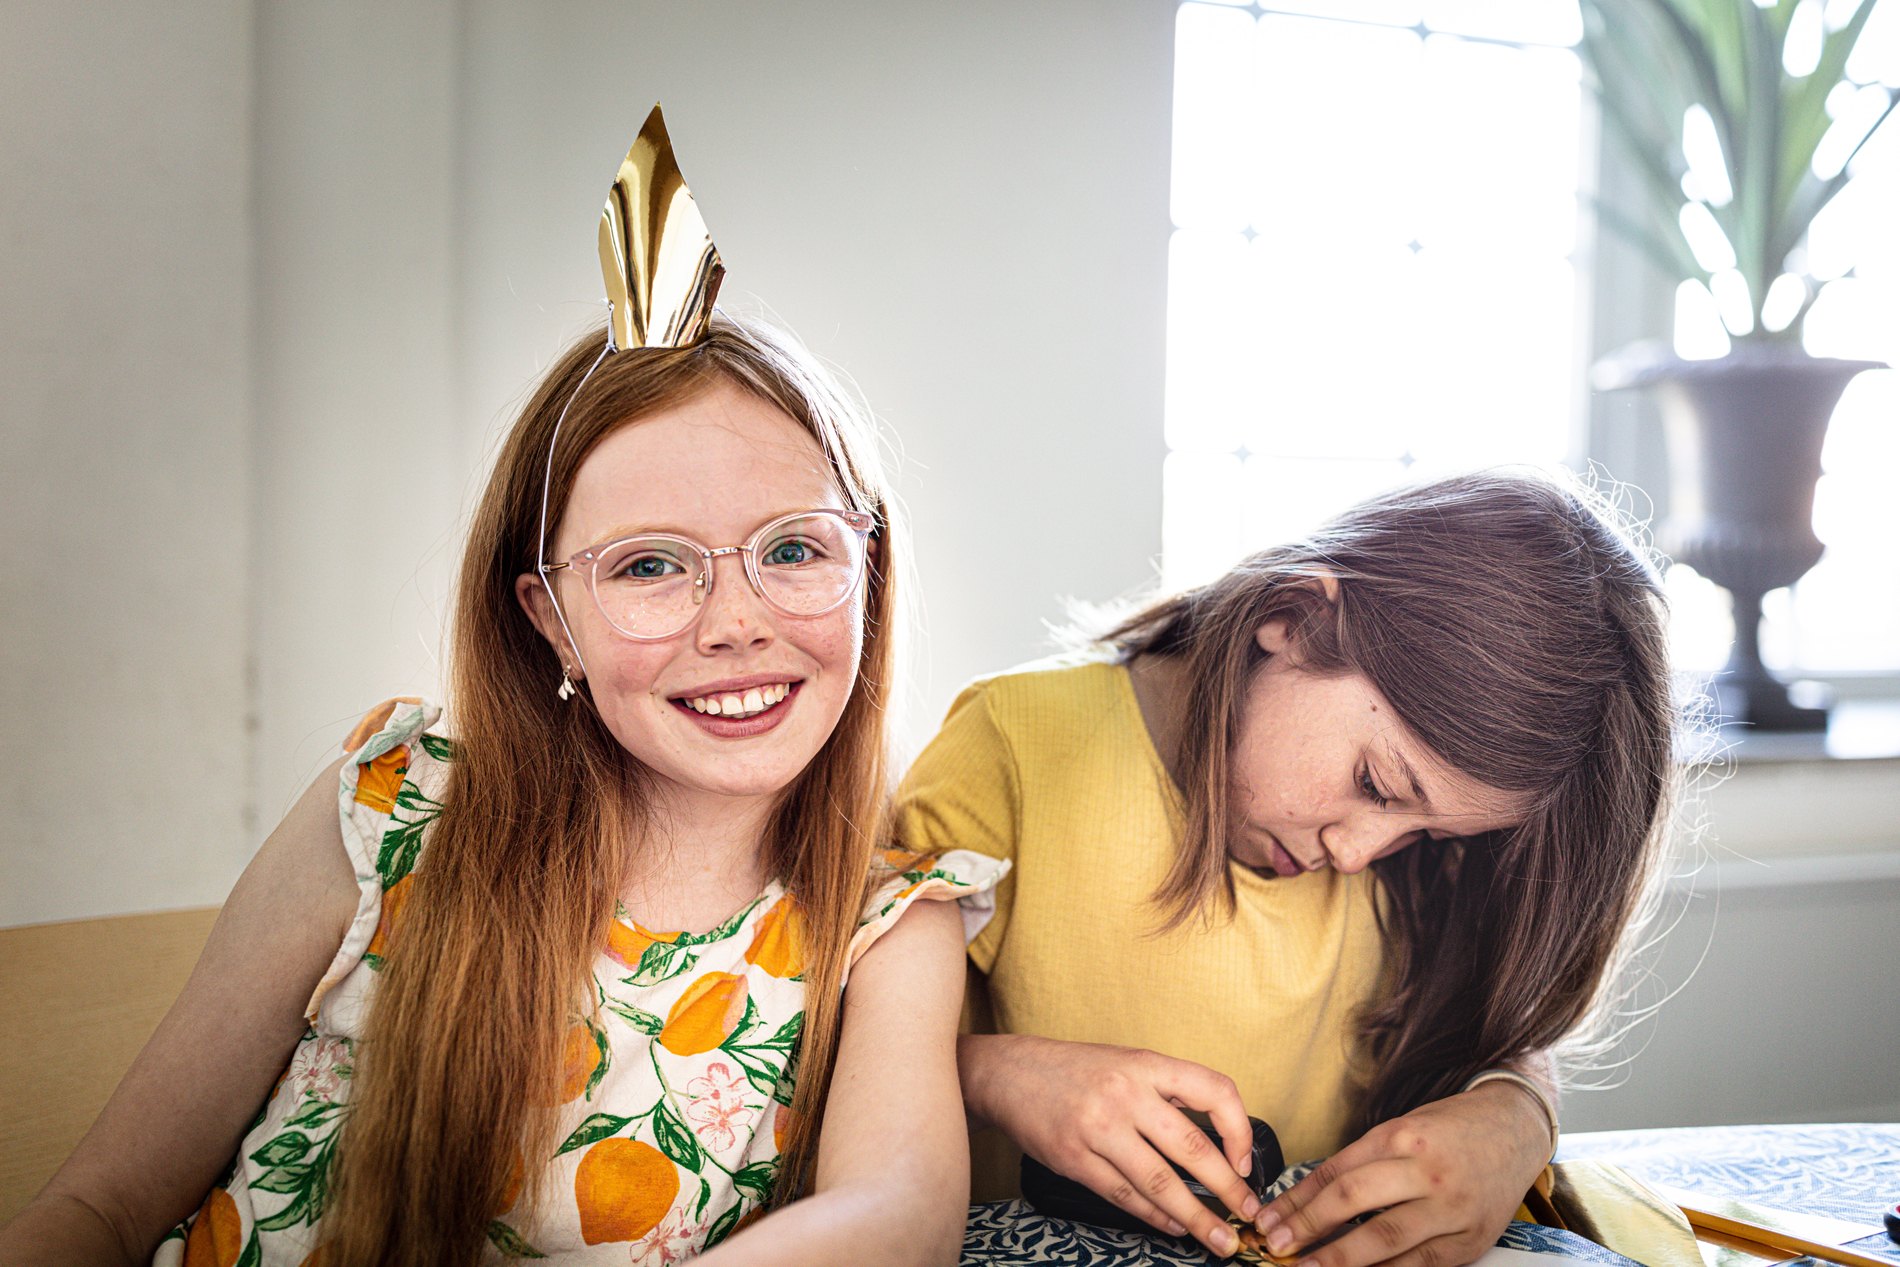 Two children doing crafts.